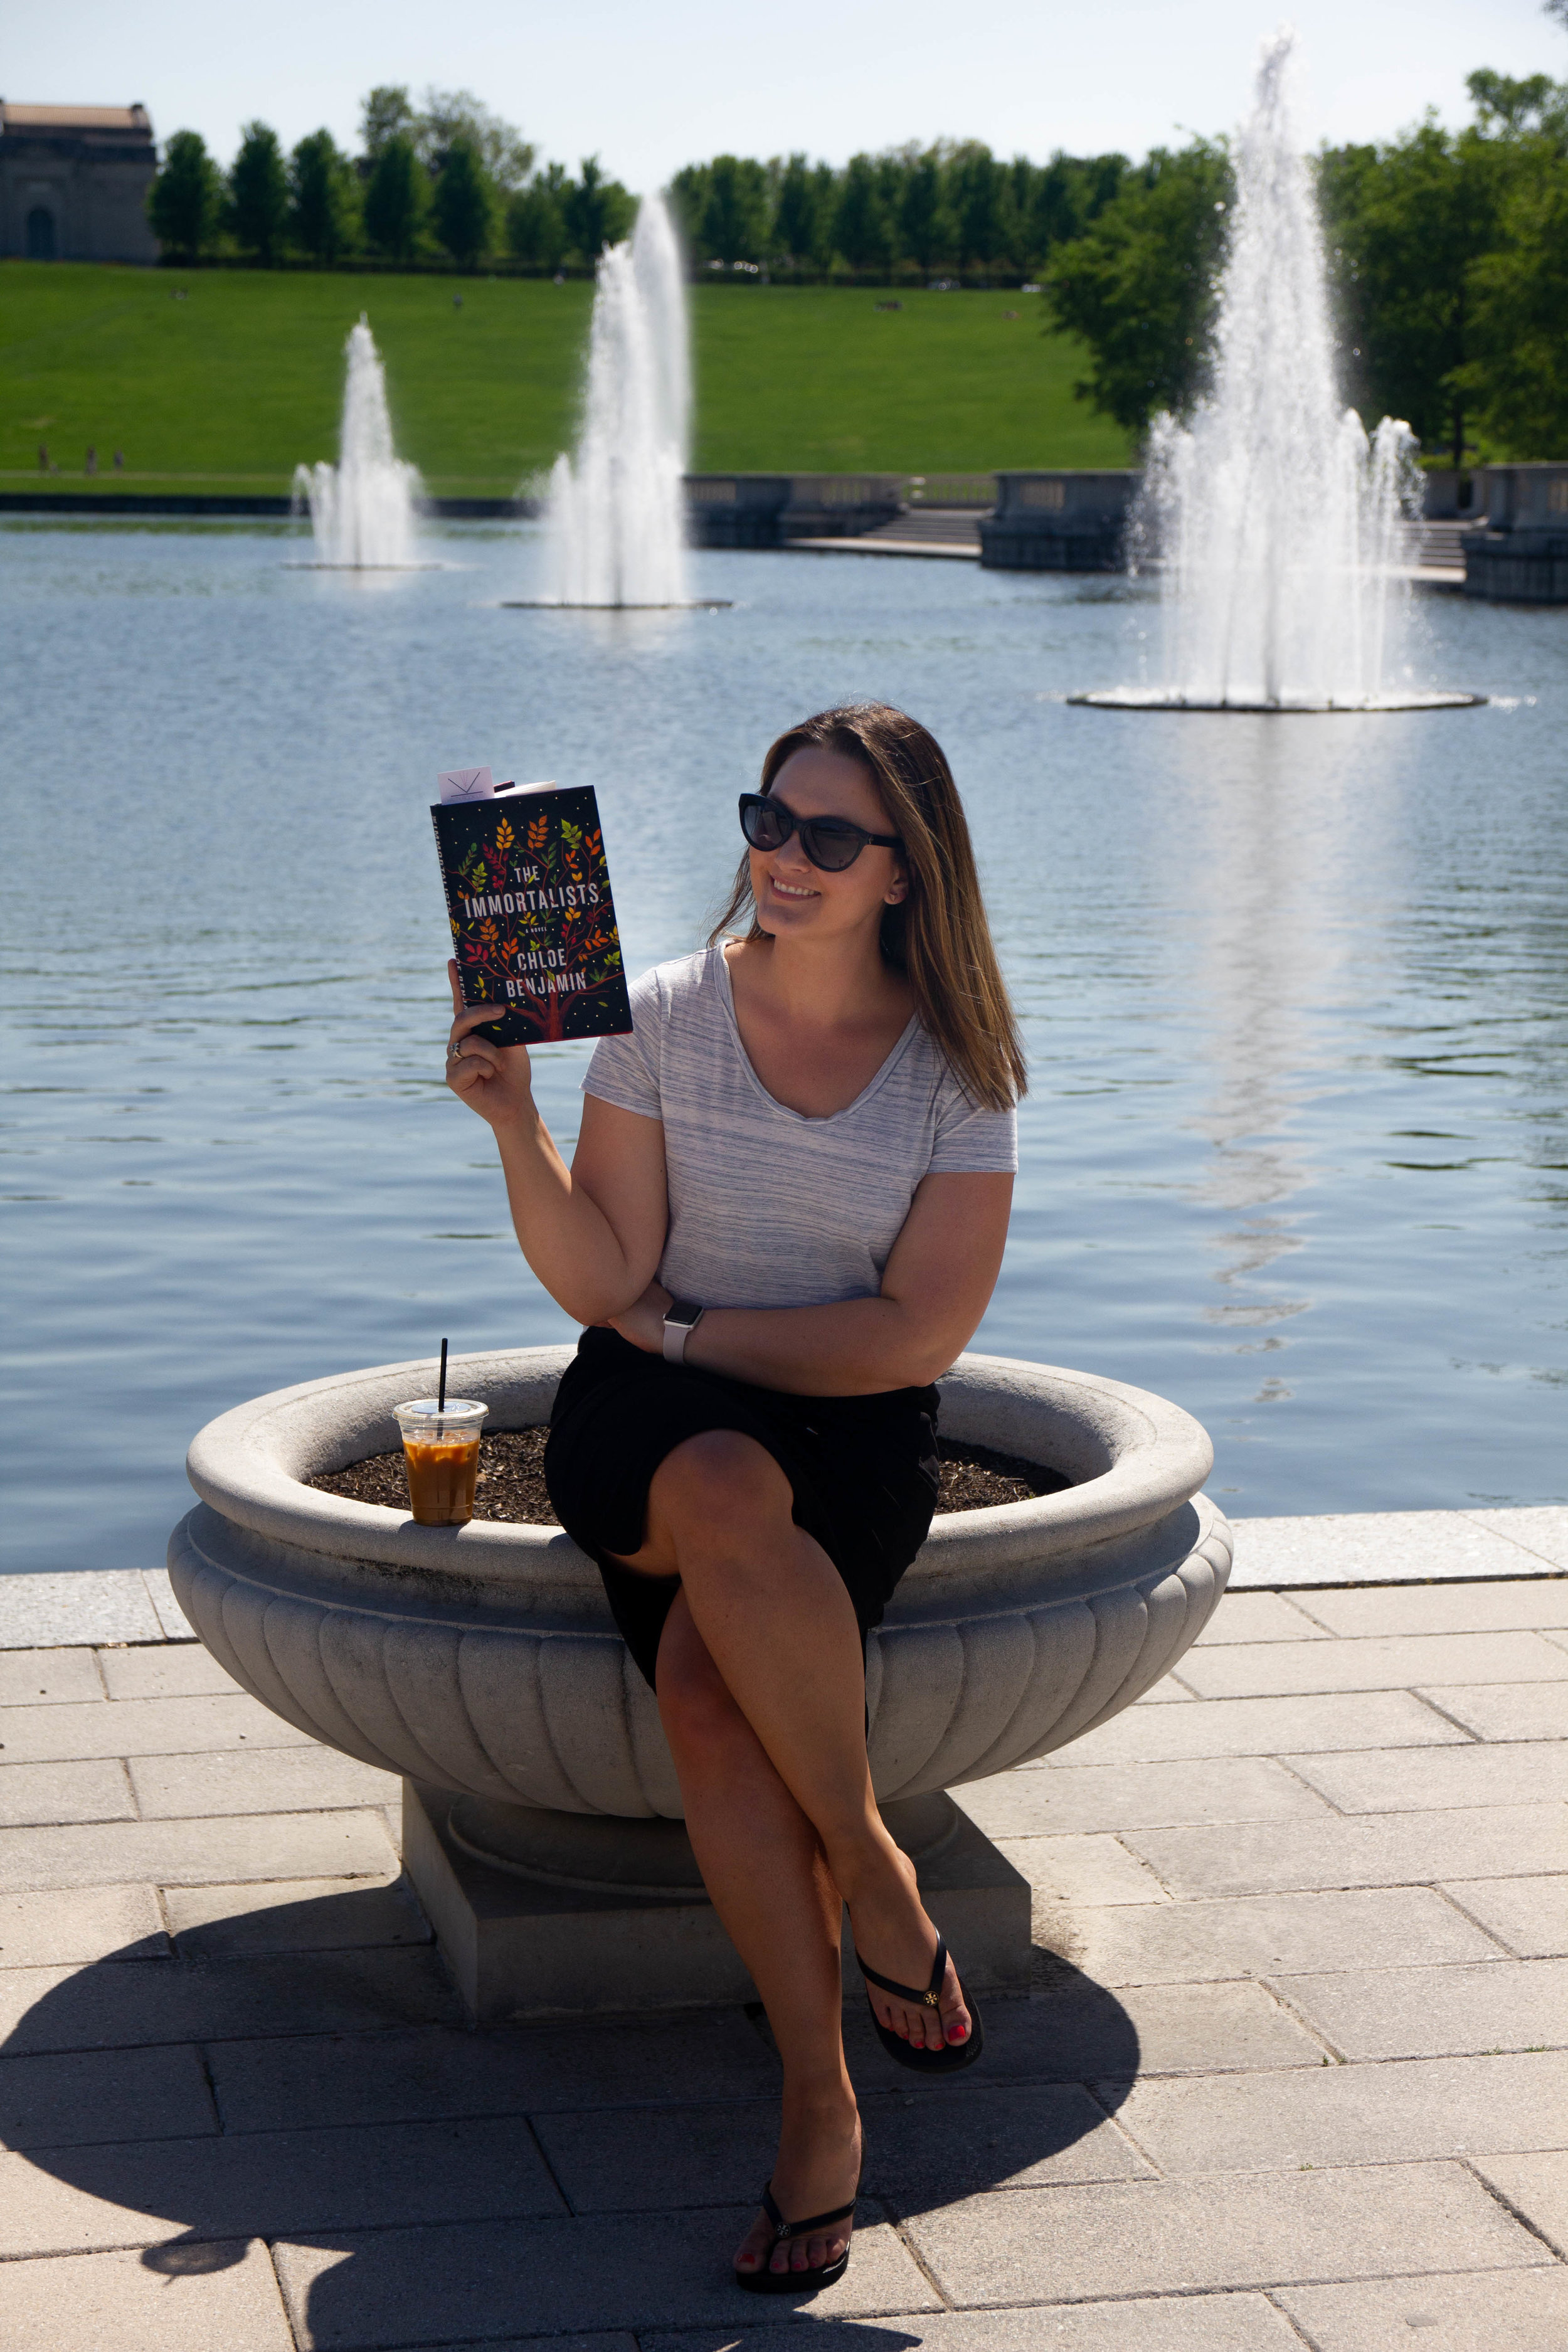 Reading The Immortalists by Chloe Benjamin at the Grand Basin outside the St. Louis Art Museum